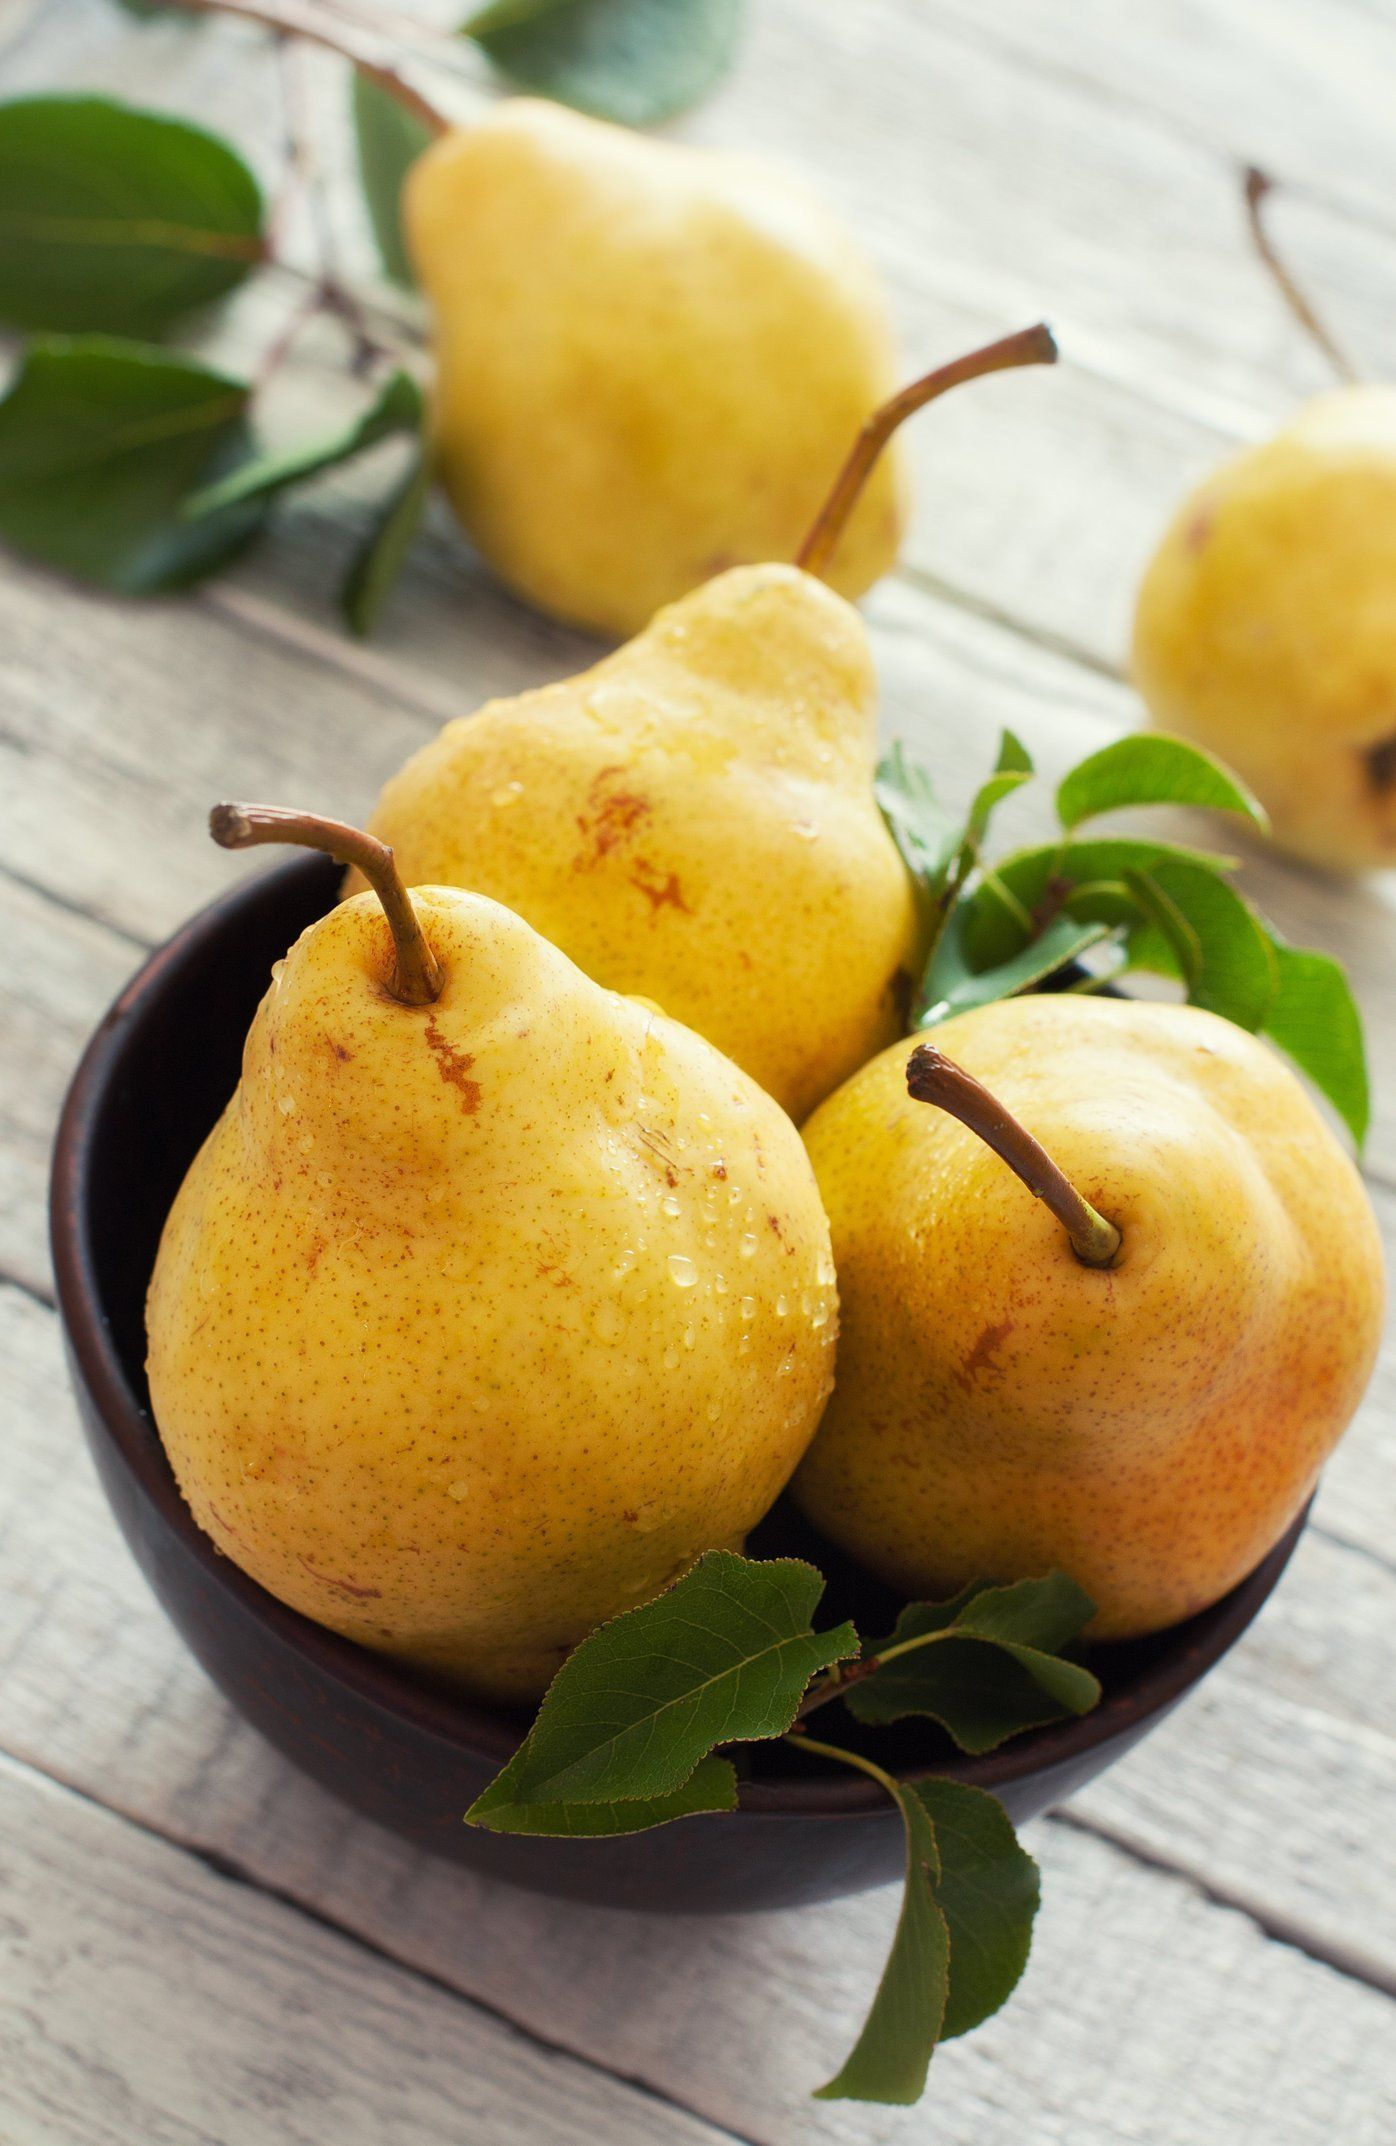 The Best Way To Choose Store And Ripen Pears With Images How To Ripen Pears Pear Fruit